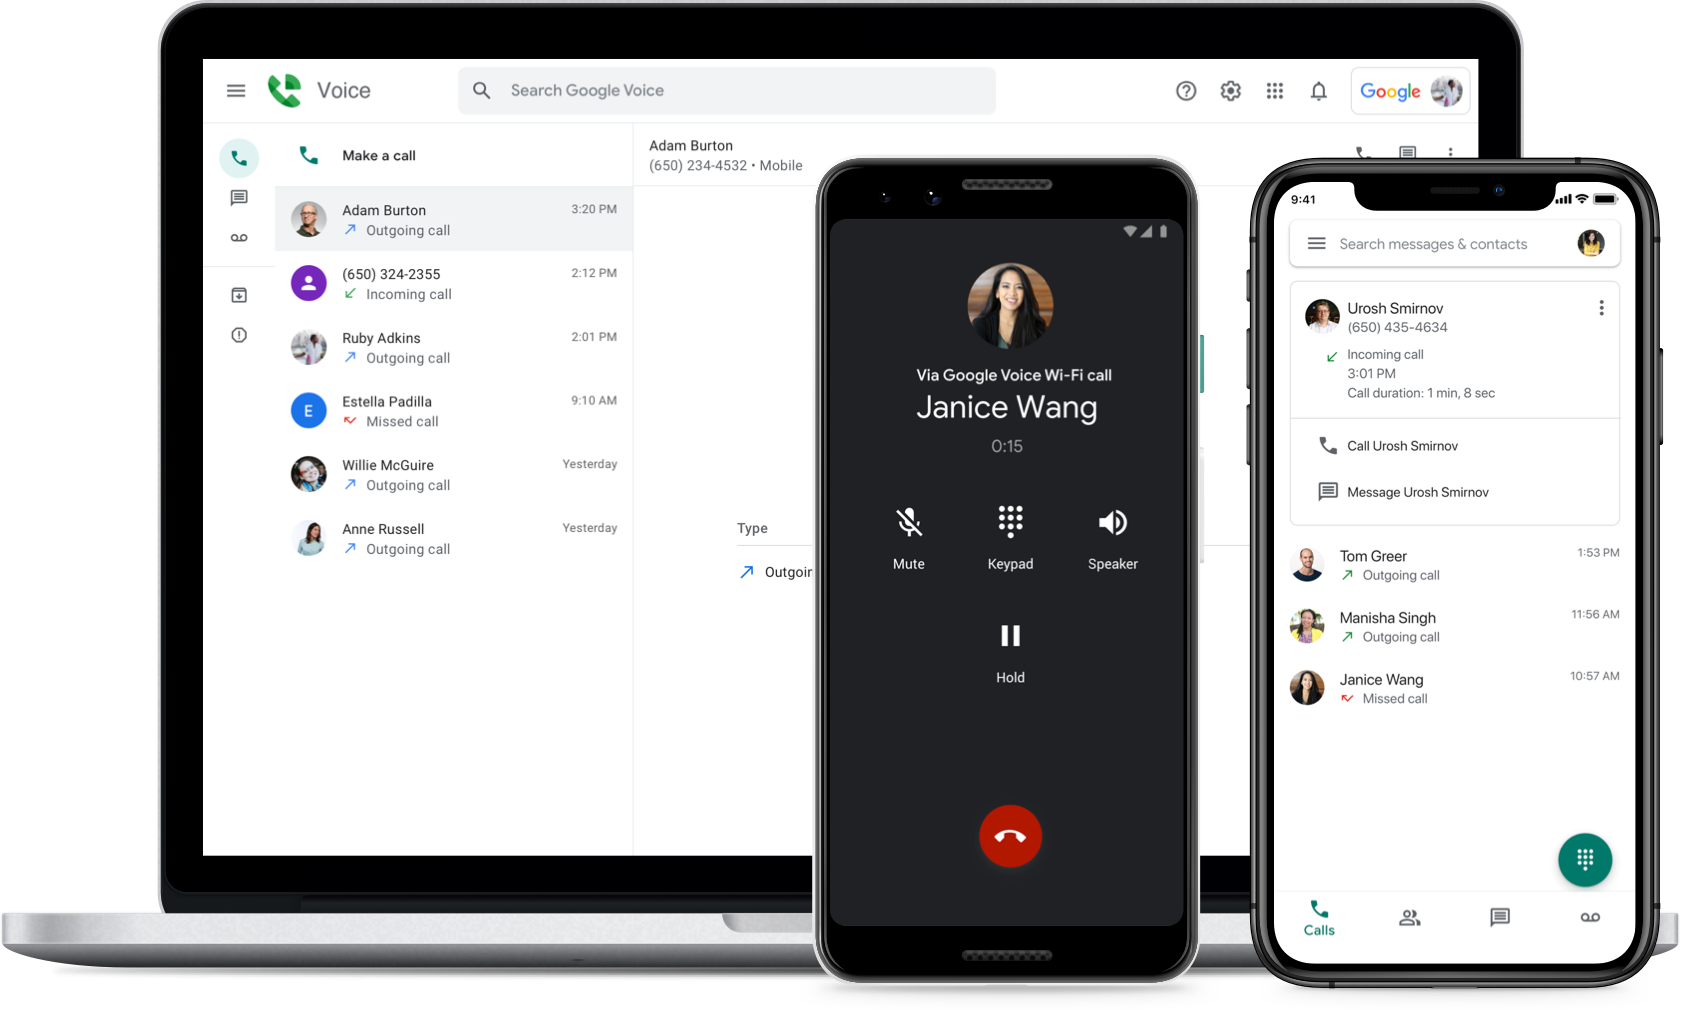 Image showing Google Voice on a laptop browser, android phone, and iPhone.